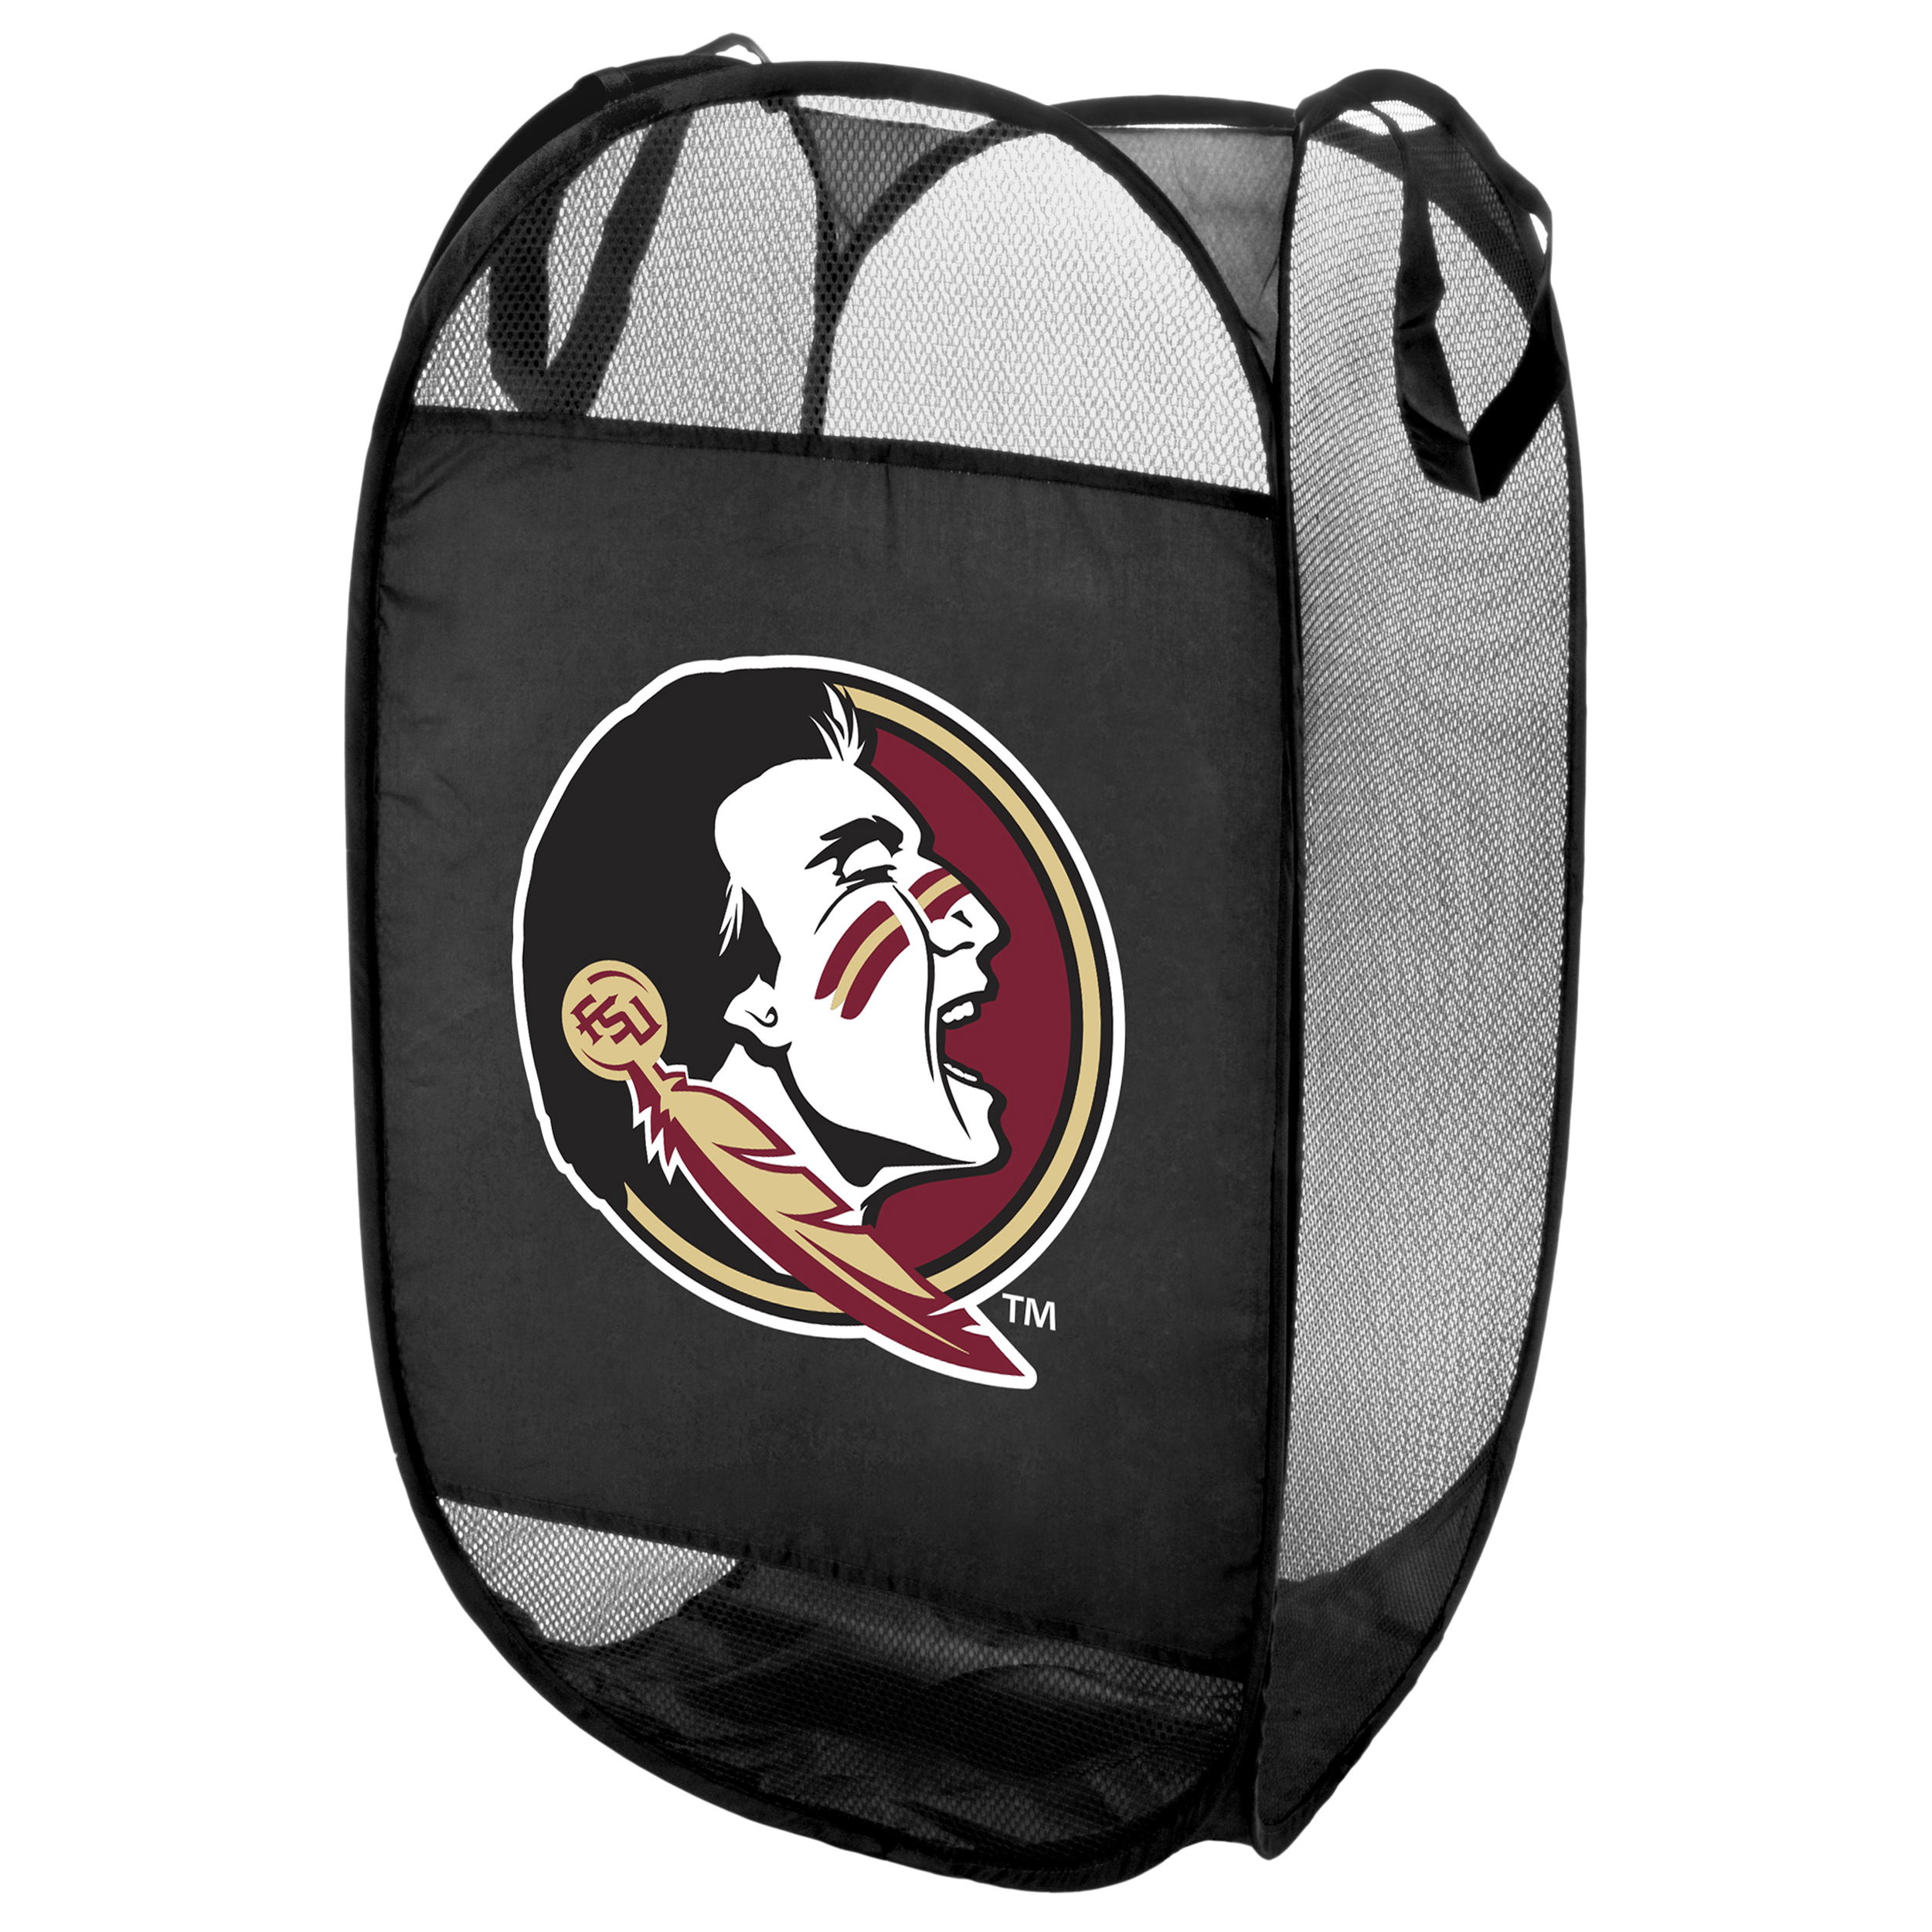 Florida State Seminoles Official NCAA Laundry Hamper Fold Up Flip Open by Forever Collectibles 069539